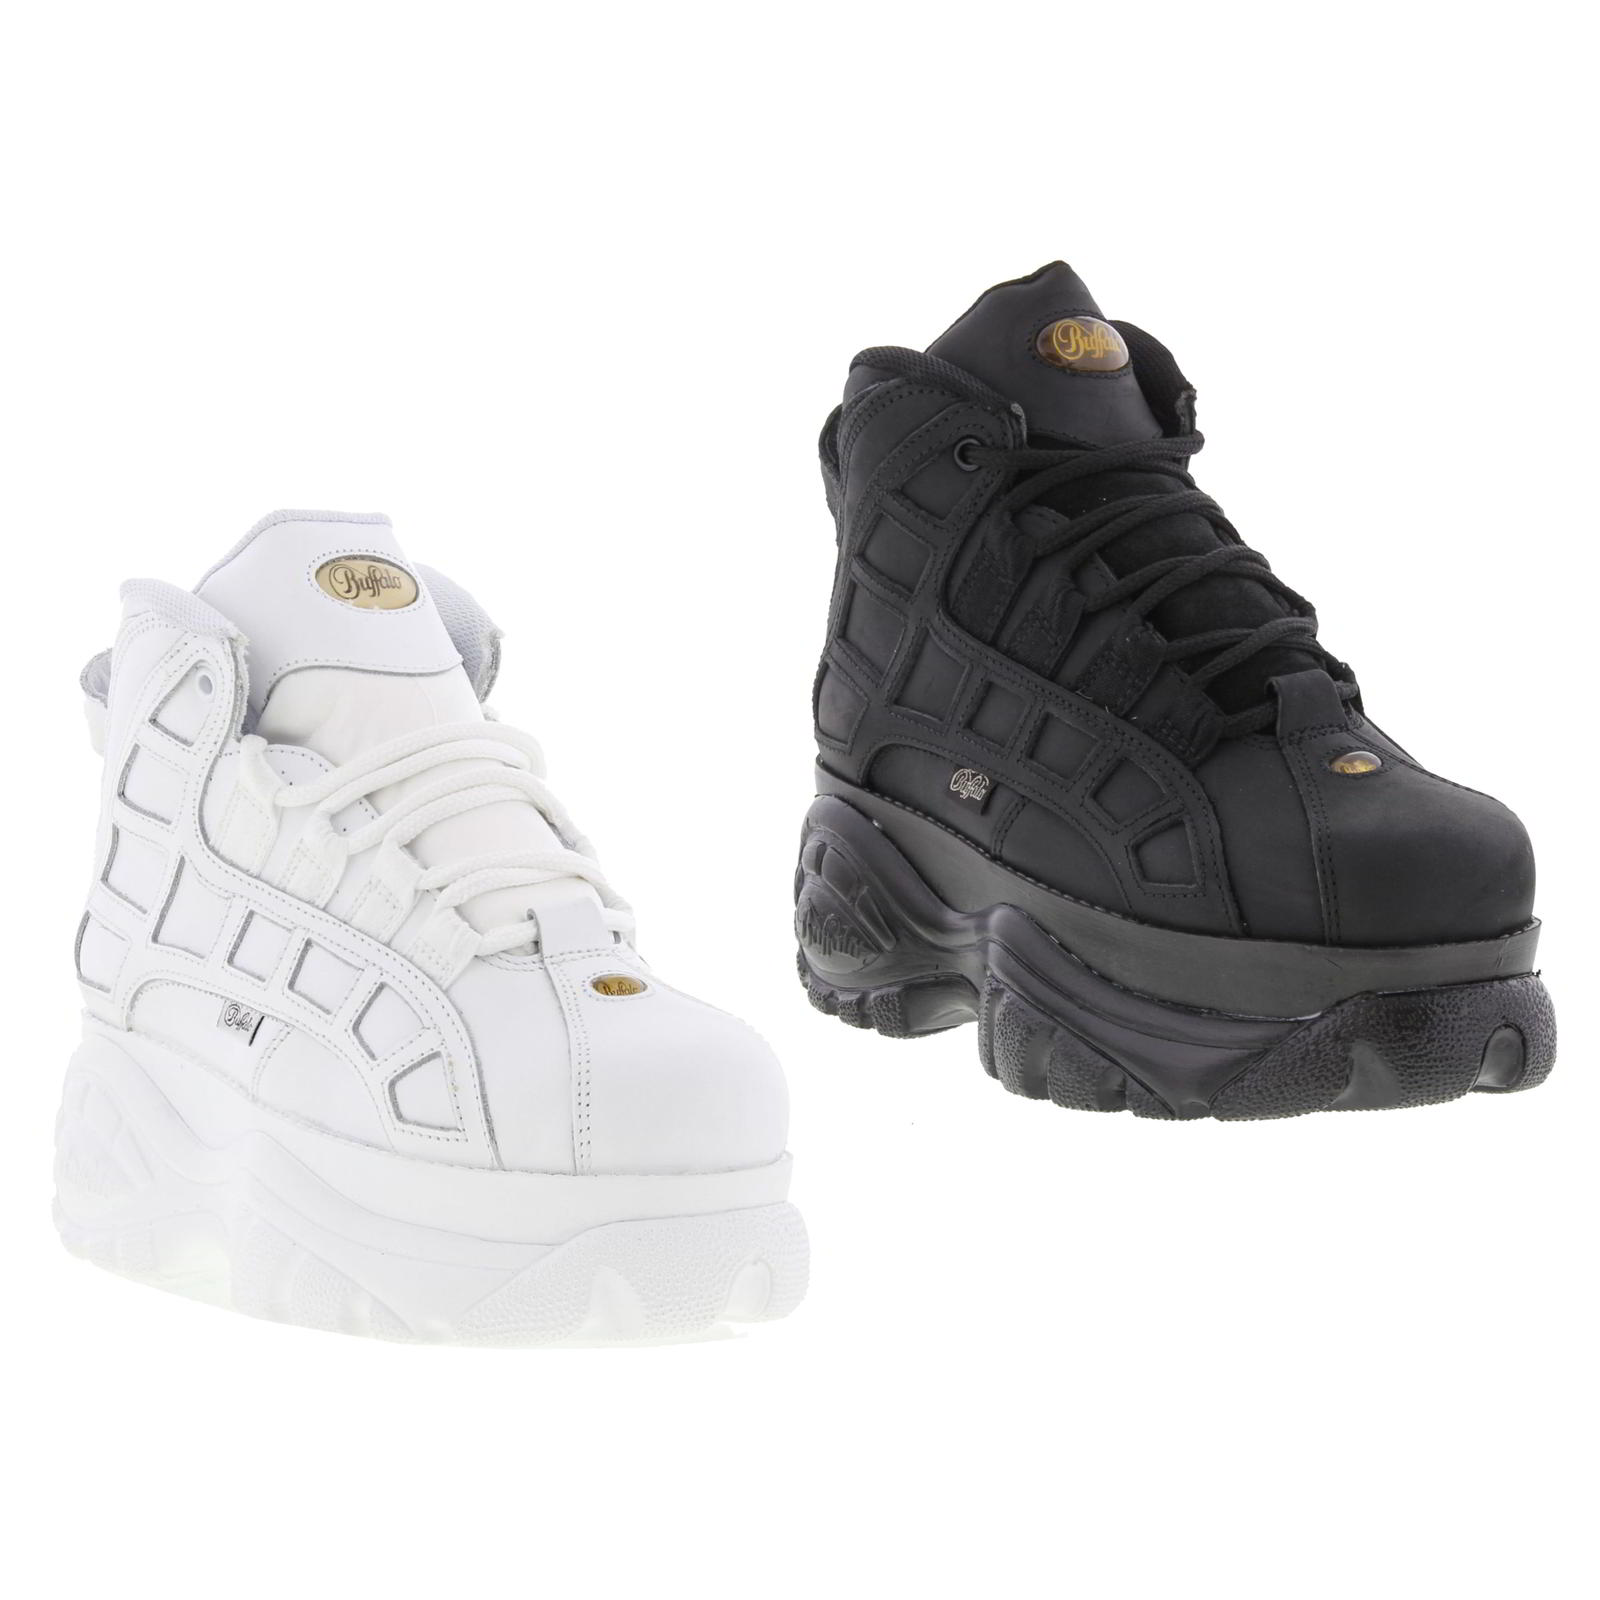 buffalo 2003 14 womens white leather platform trainers